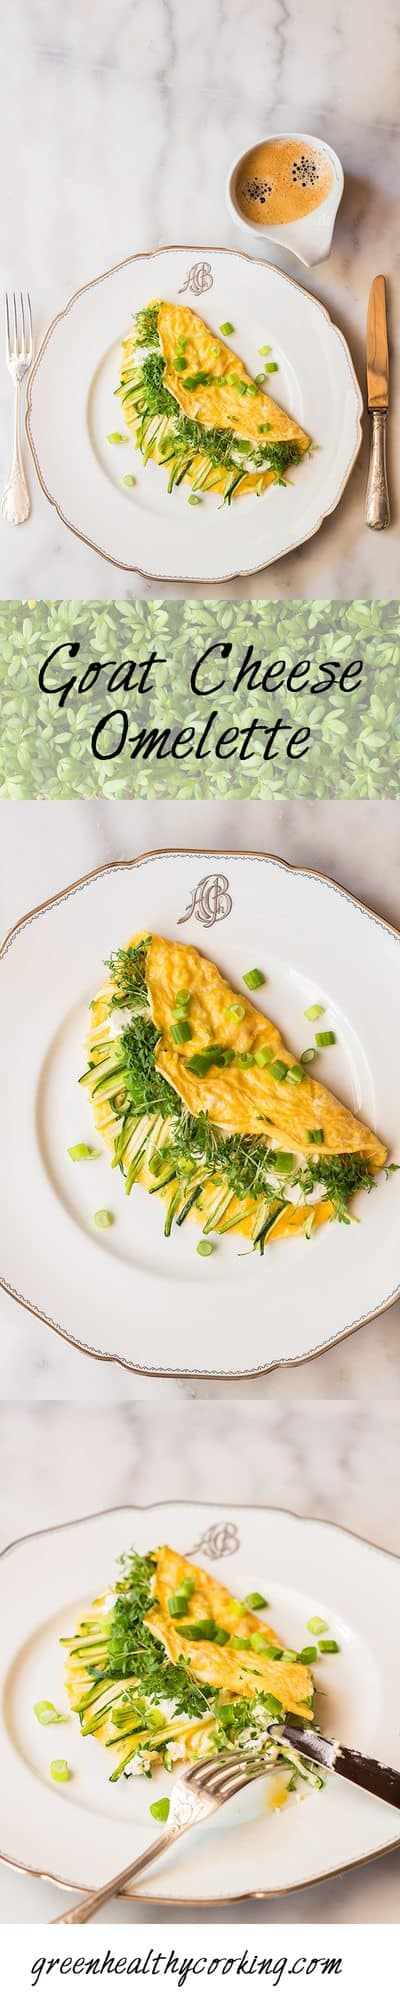 Collage of Goat Cheese Omelette images with text overlay for Pinterest.